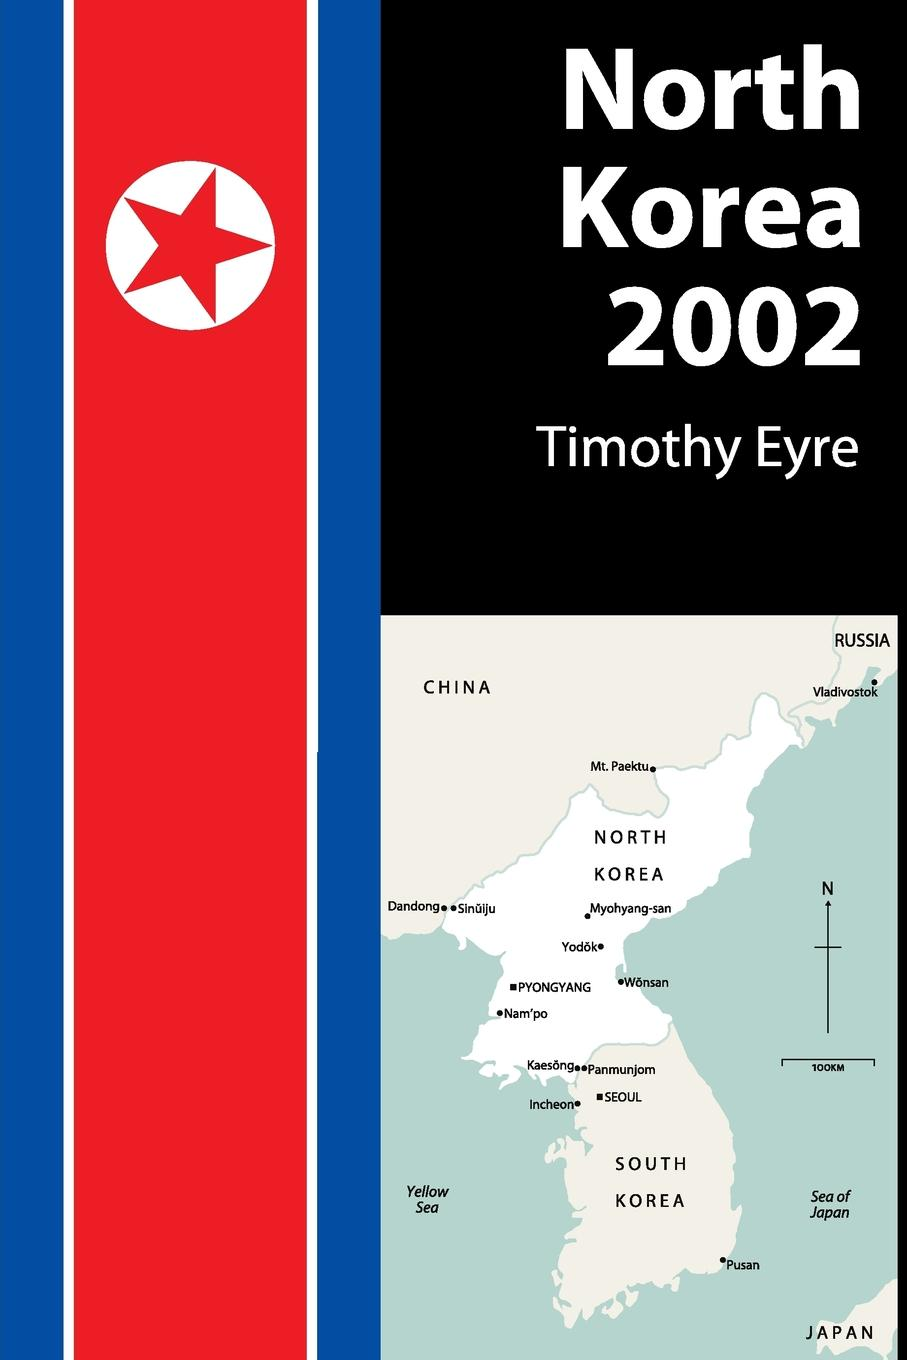 Timothy Eyre North Korea 2002